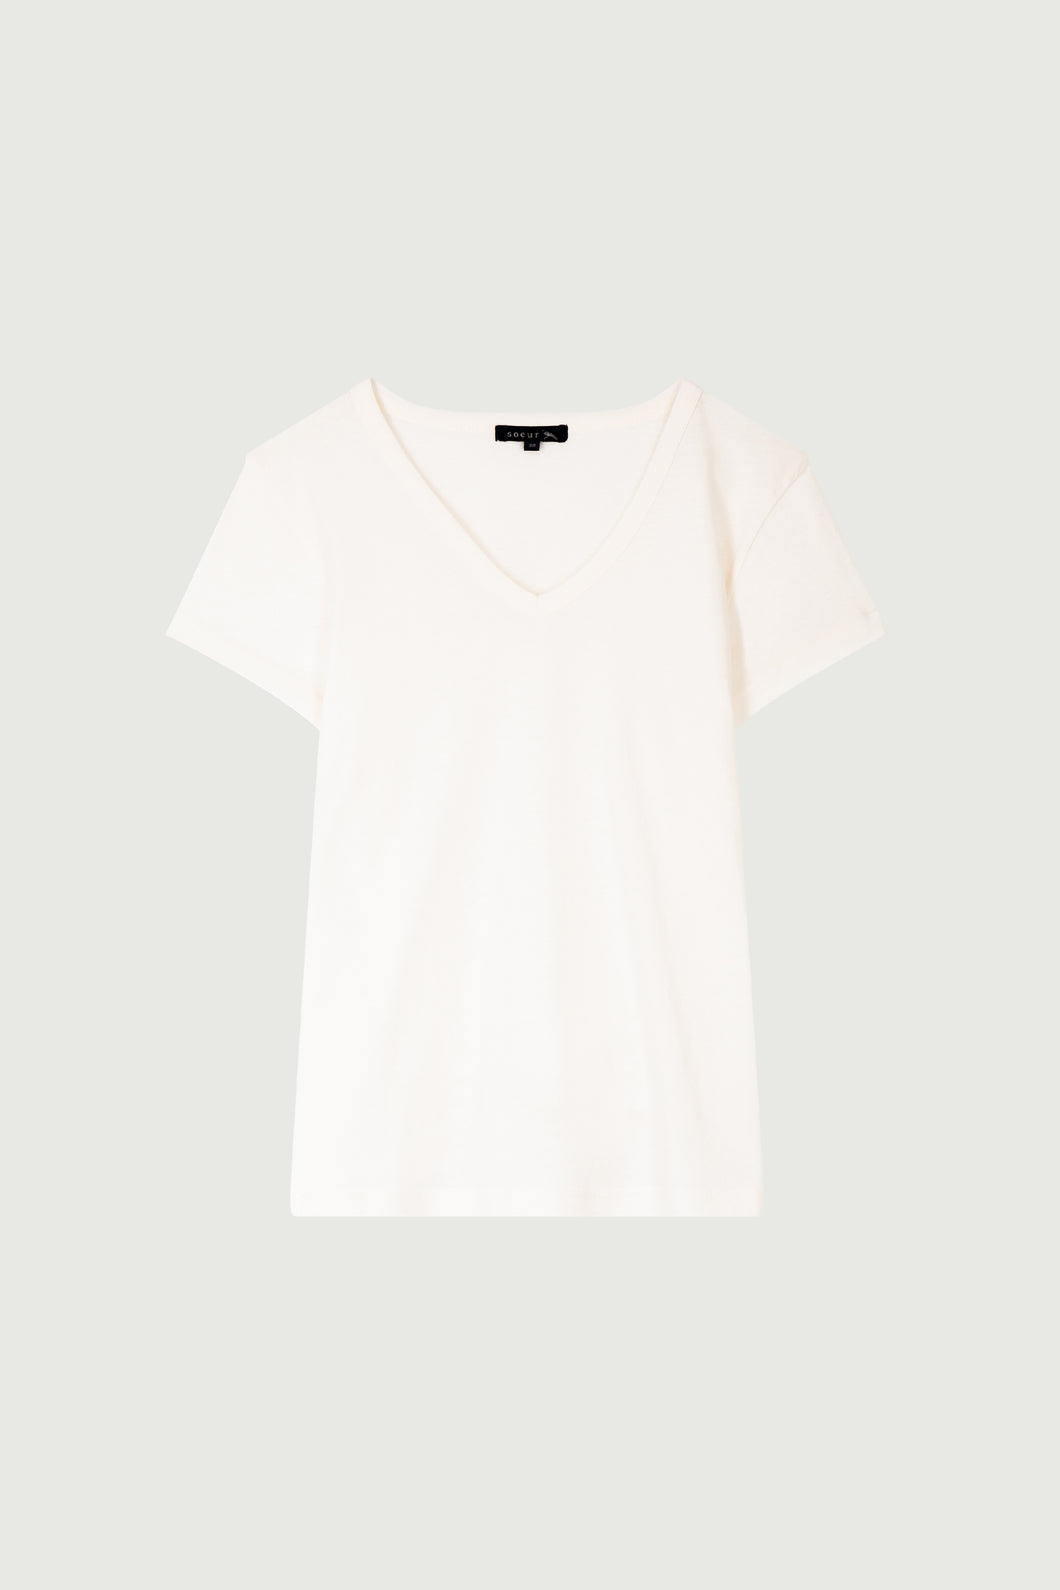 Dominique ivory T-shirt